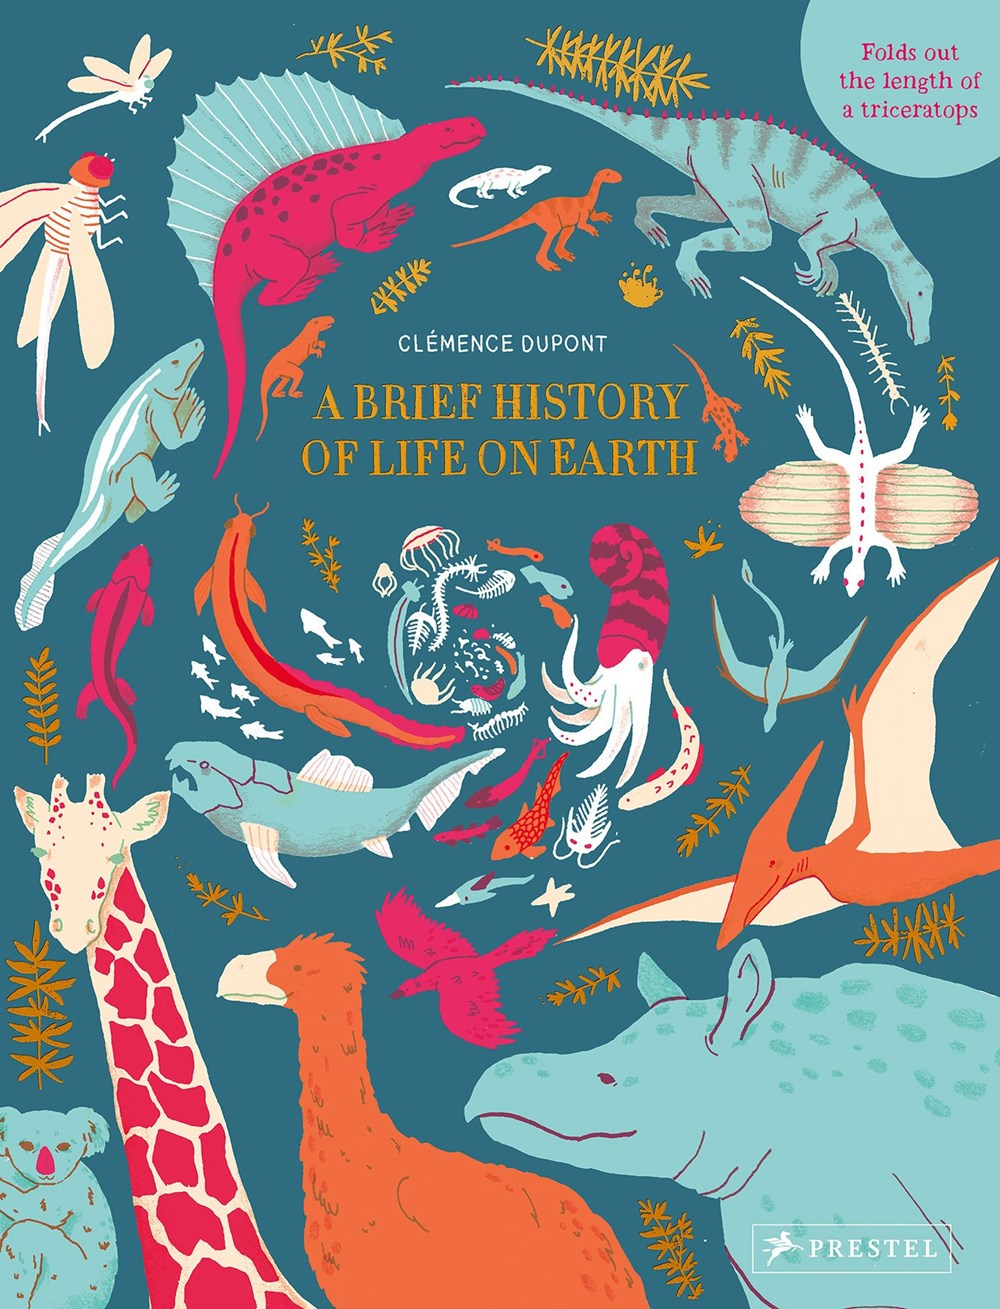 Clemence Dupont - Brief History of Life on Earth